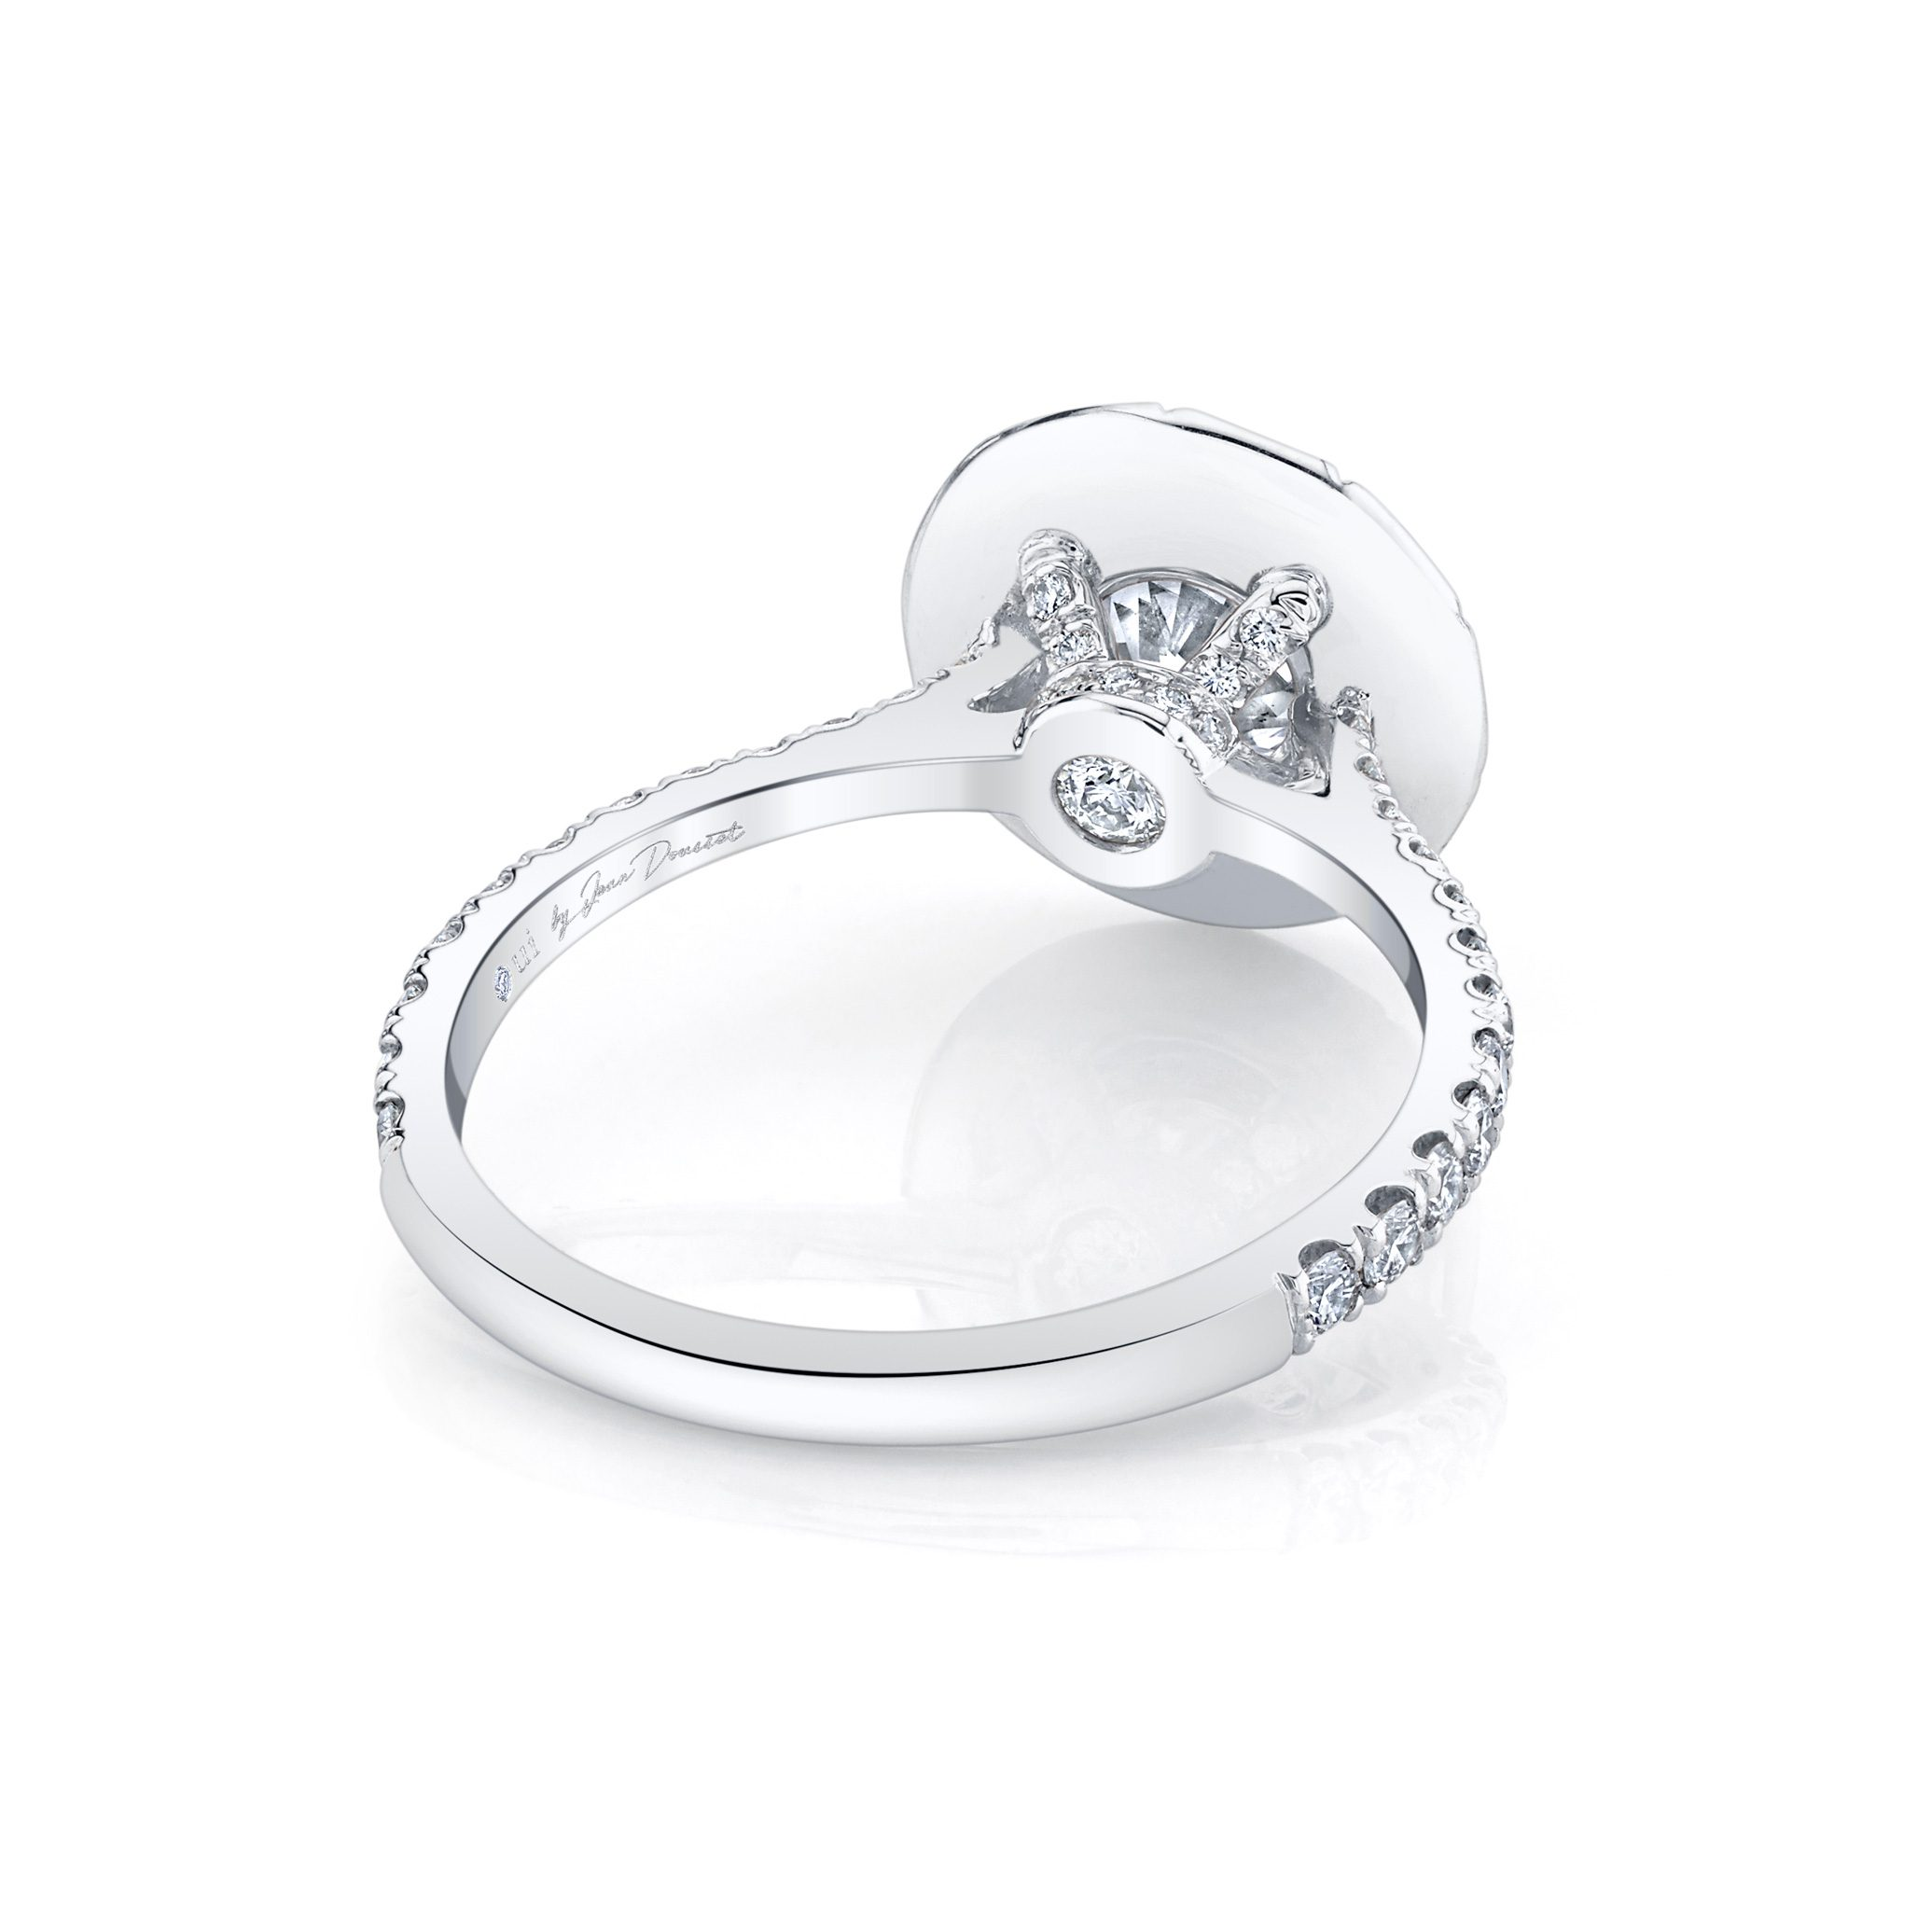 Eloise Round Brilliant Seamless Solitaire® Engagement Ring with diamond pavé in 18k White Gold Back View by Oui by Jean Dousset